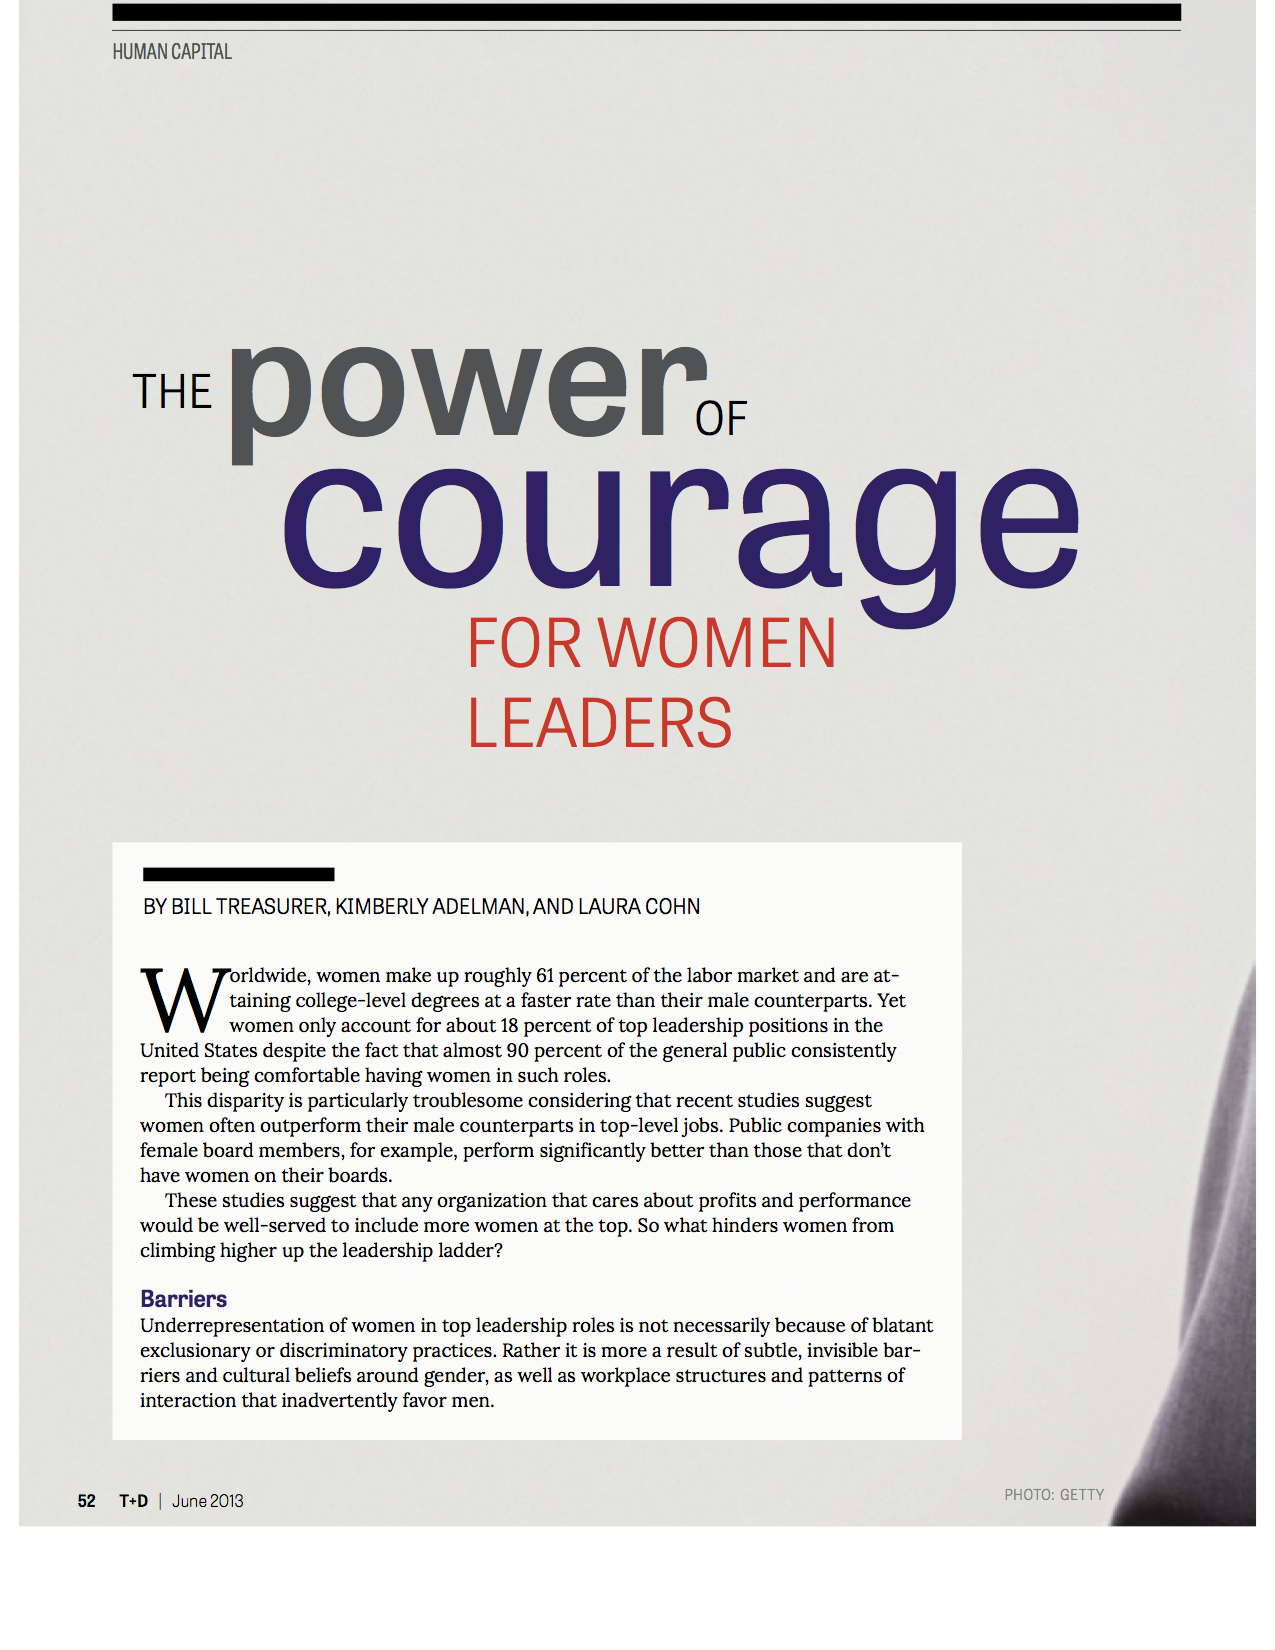 The Power of Courage for Women Leaders